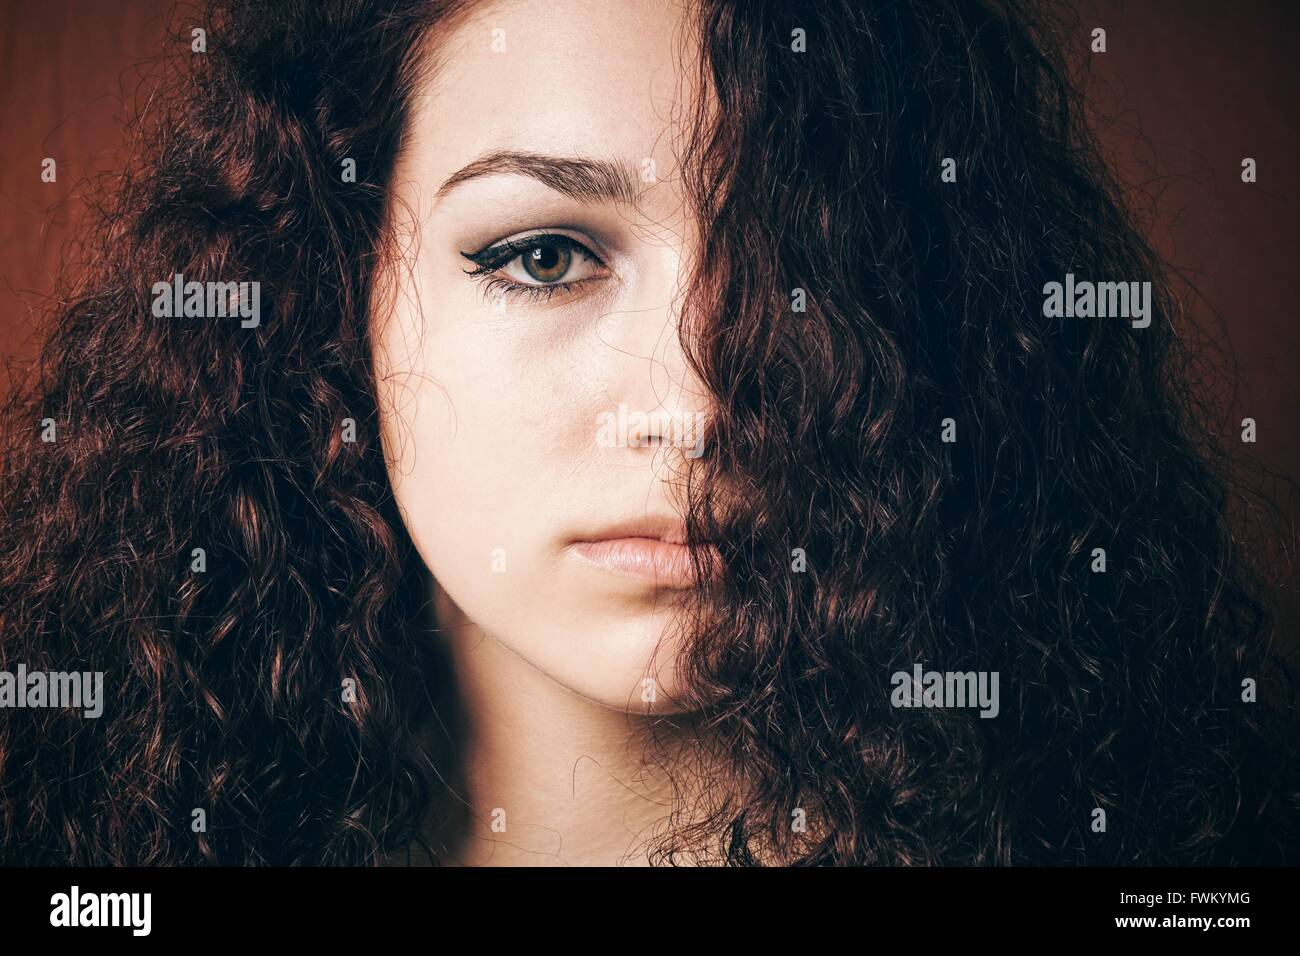 Close-up Portrait Frau mit lockigem Haar Stockbild